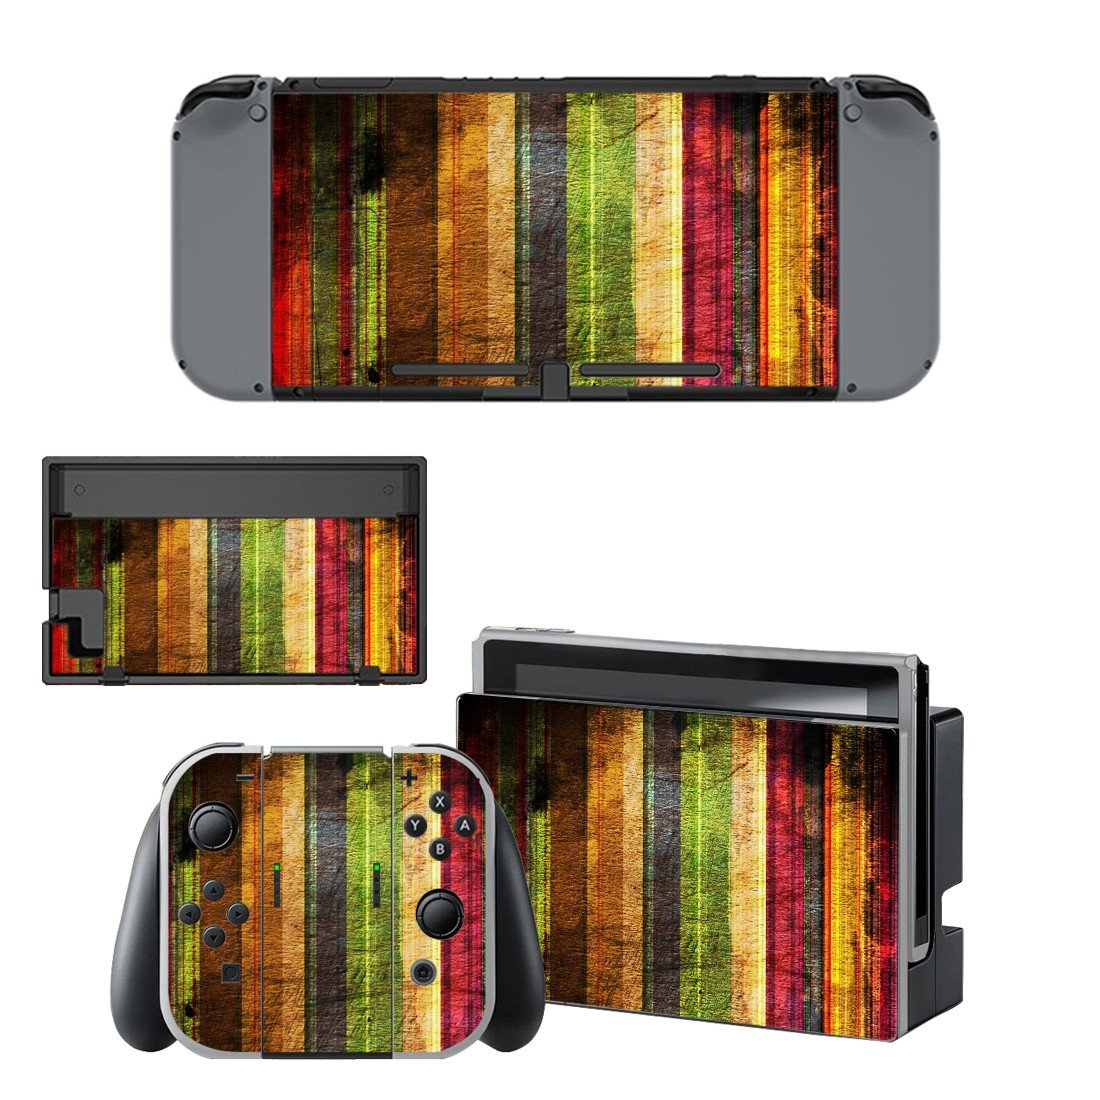 Blurry wall decal for Nintendo switch console sticker skin